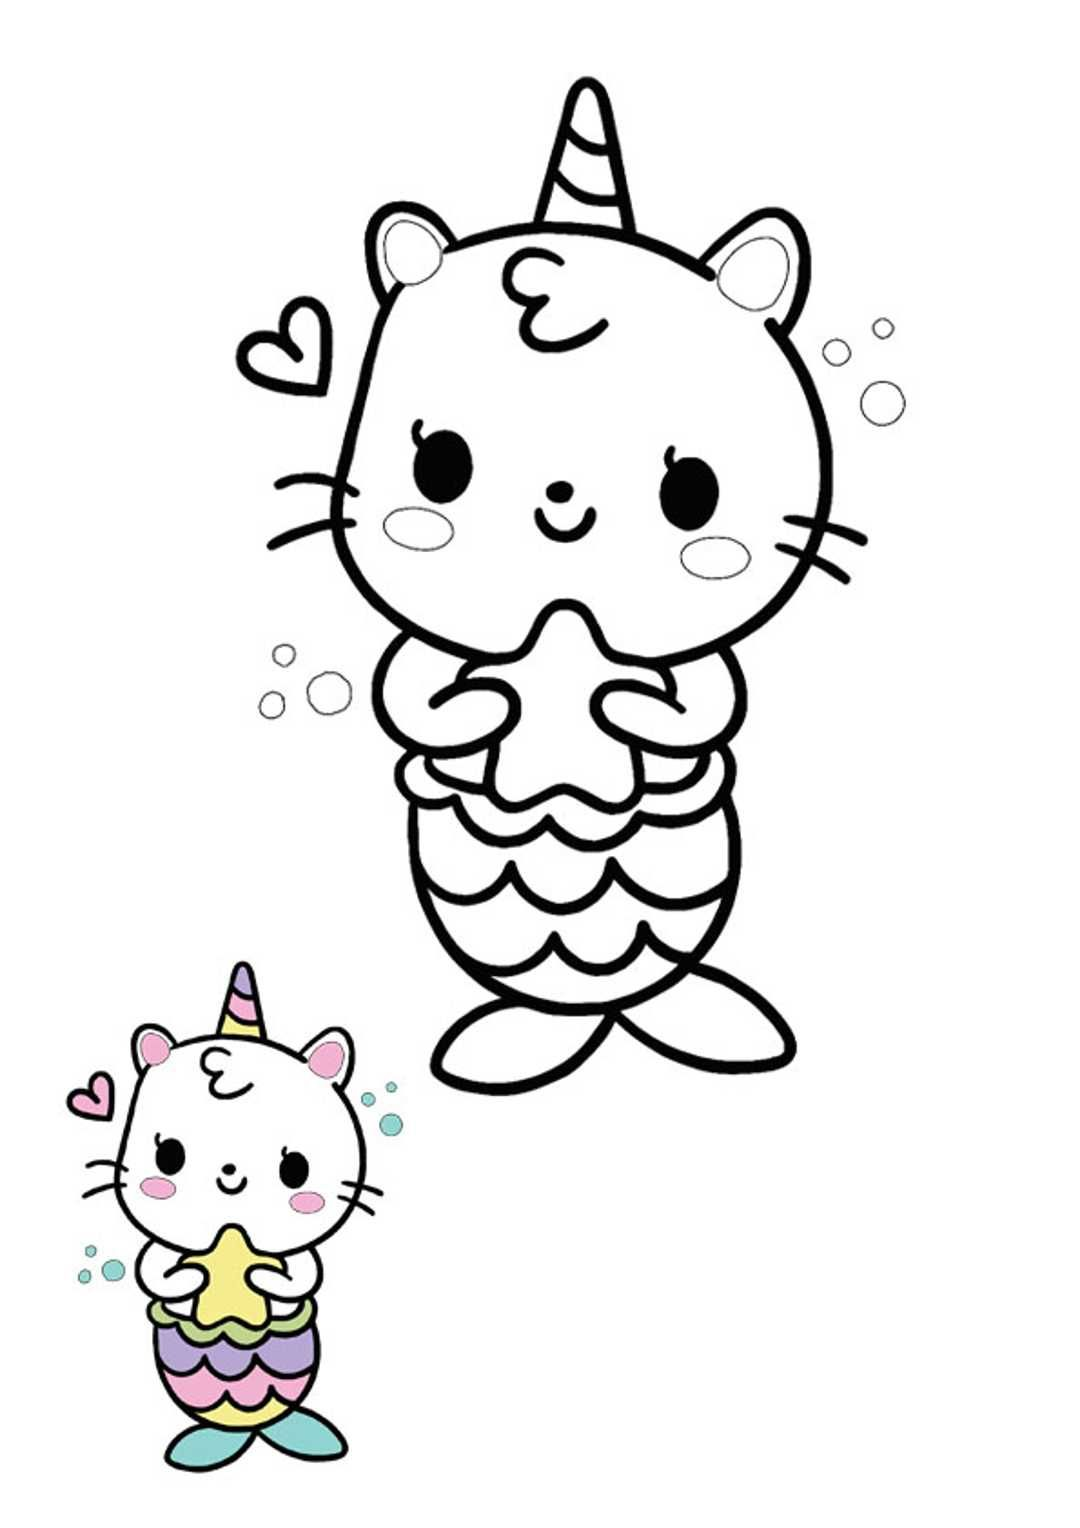 Unicorn Mermaid Coloring Pages Cat Coloring Book Mermaid Coloring Pages Unicorn Coloring Pages